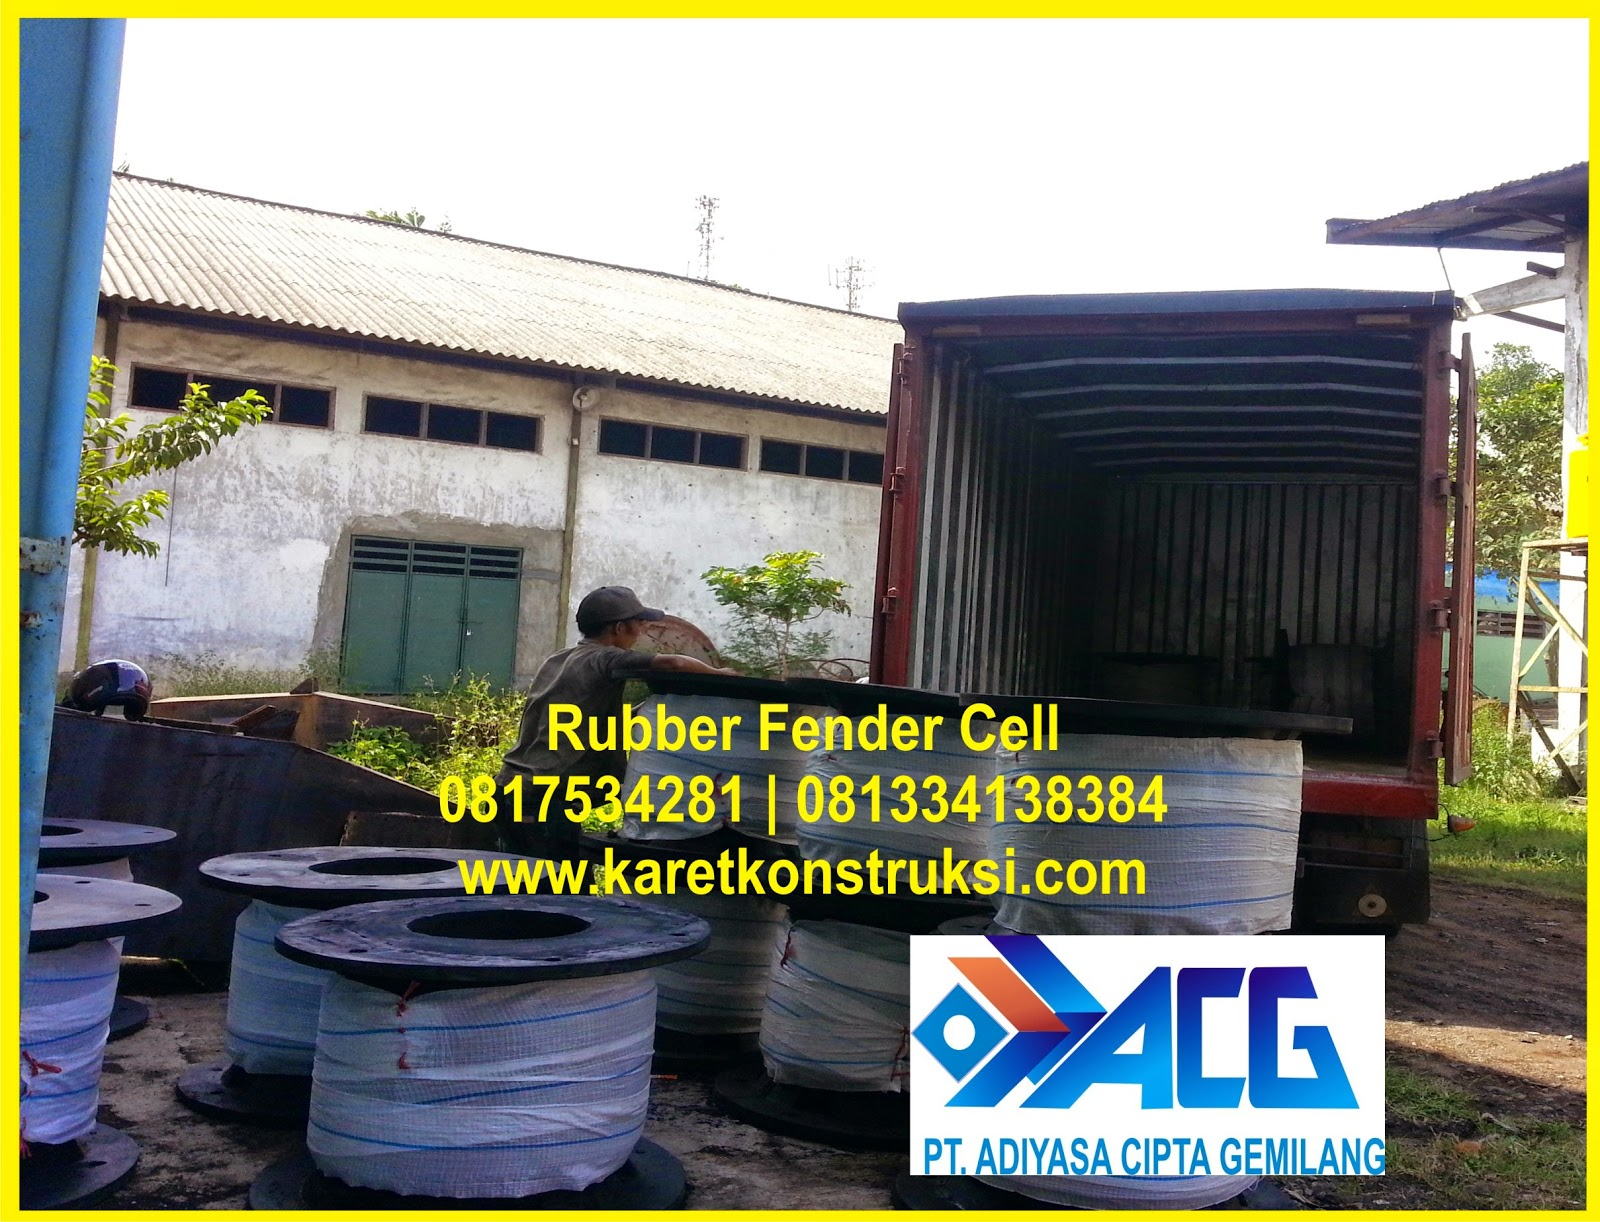 Jual Rubber fender , rubber fender jakarta , rubber fender type v , Harga rubber fender indonesia  , rubber fender specification , rubber fender surabaya